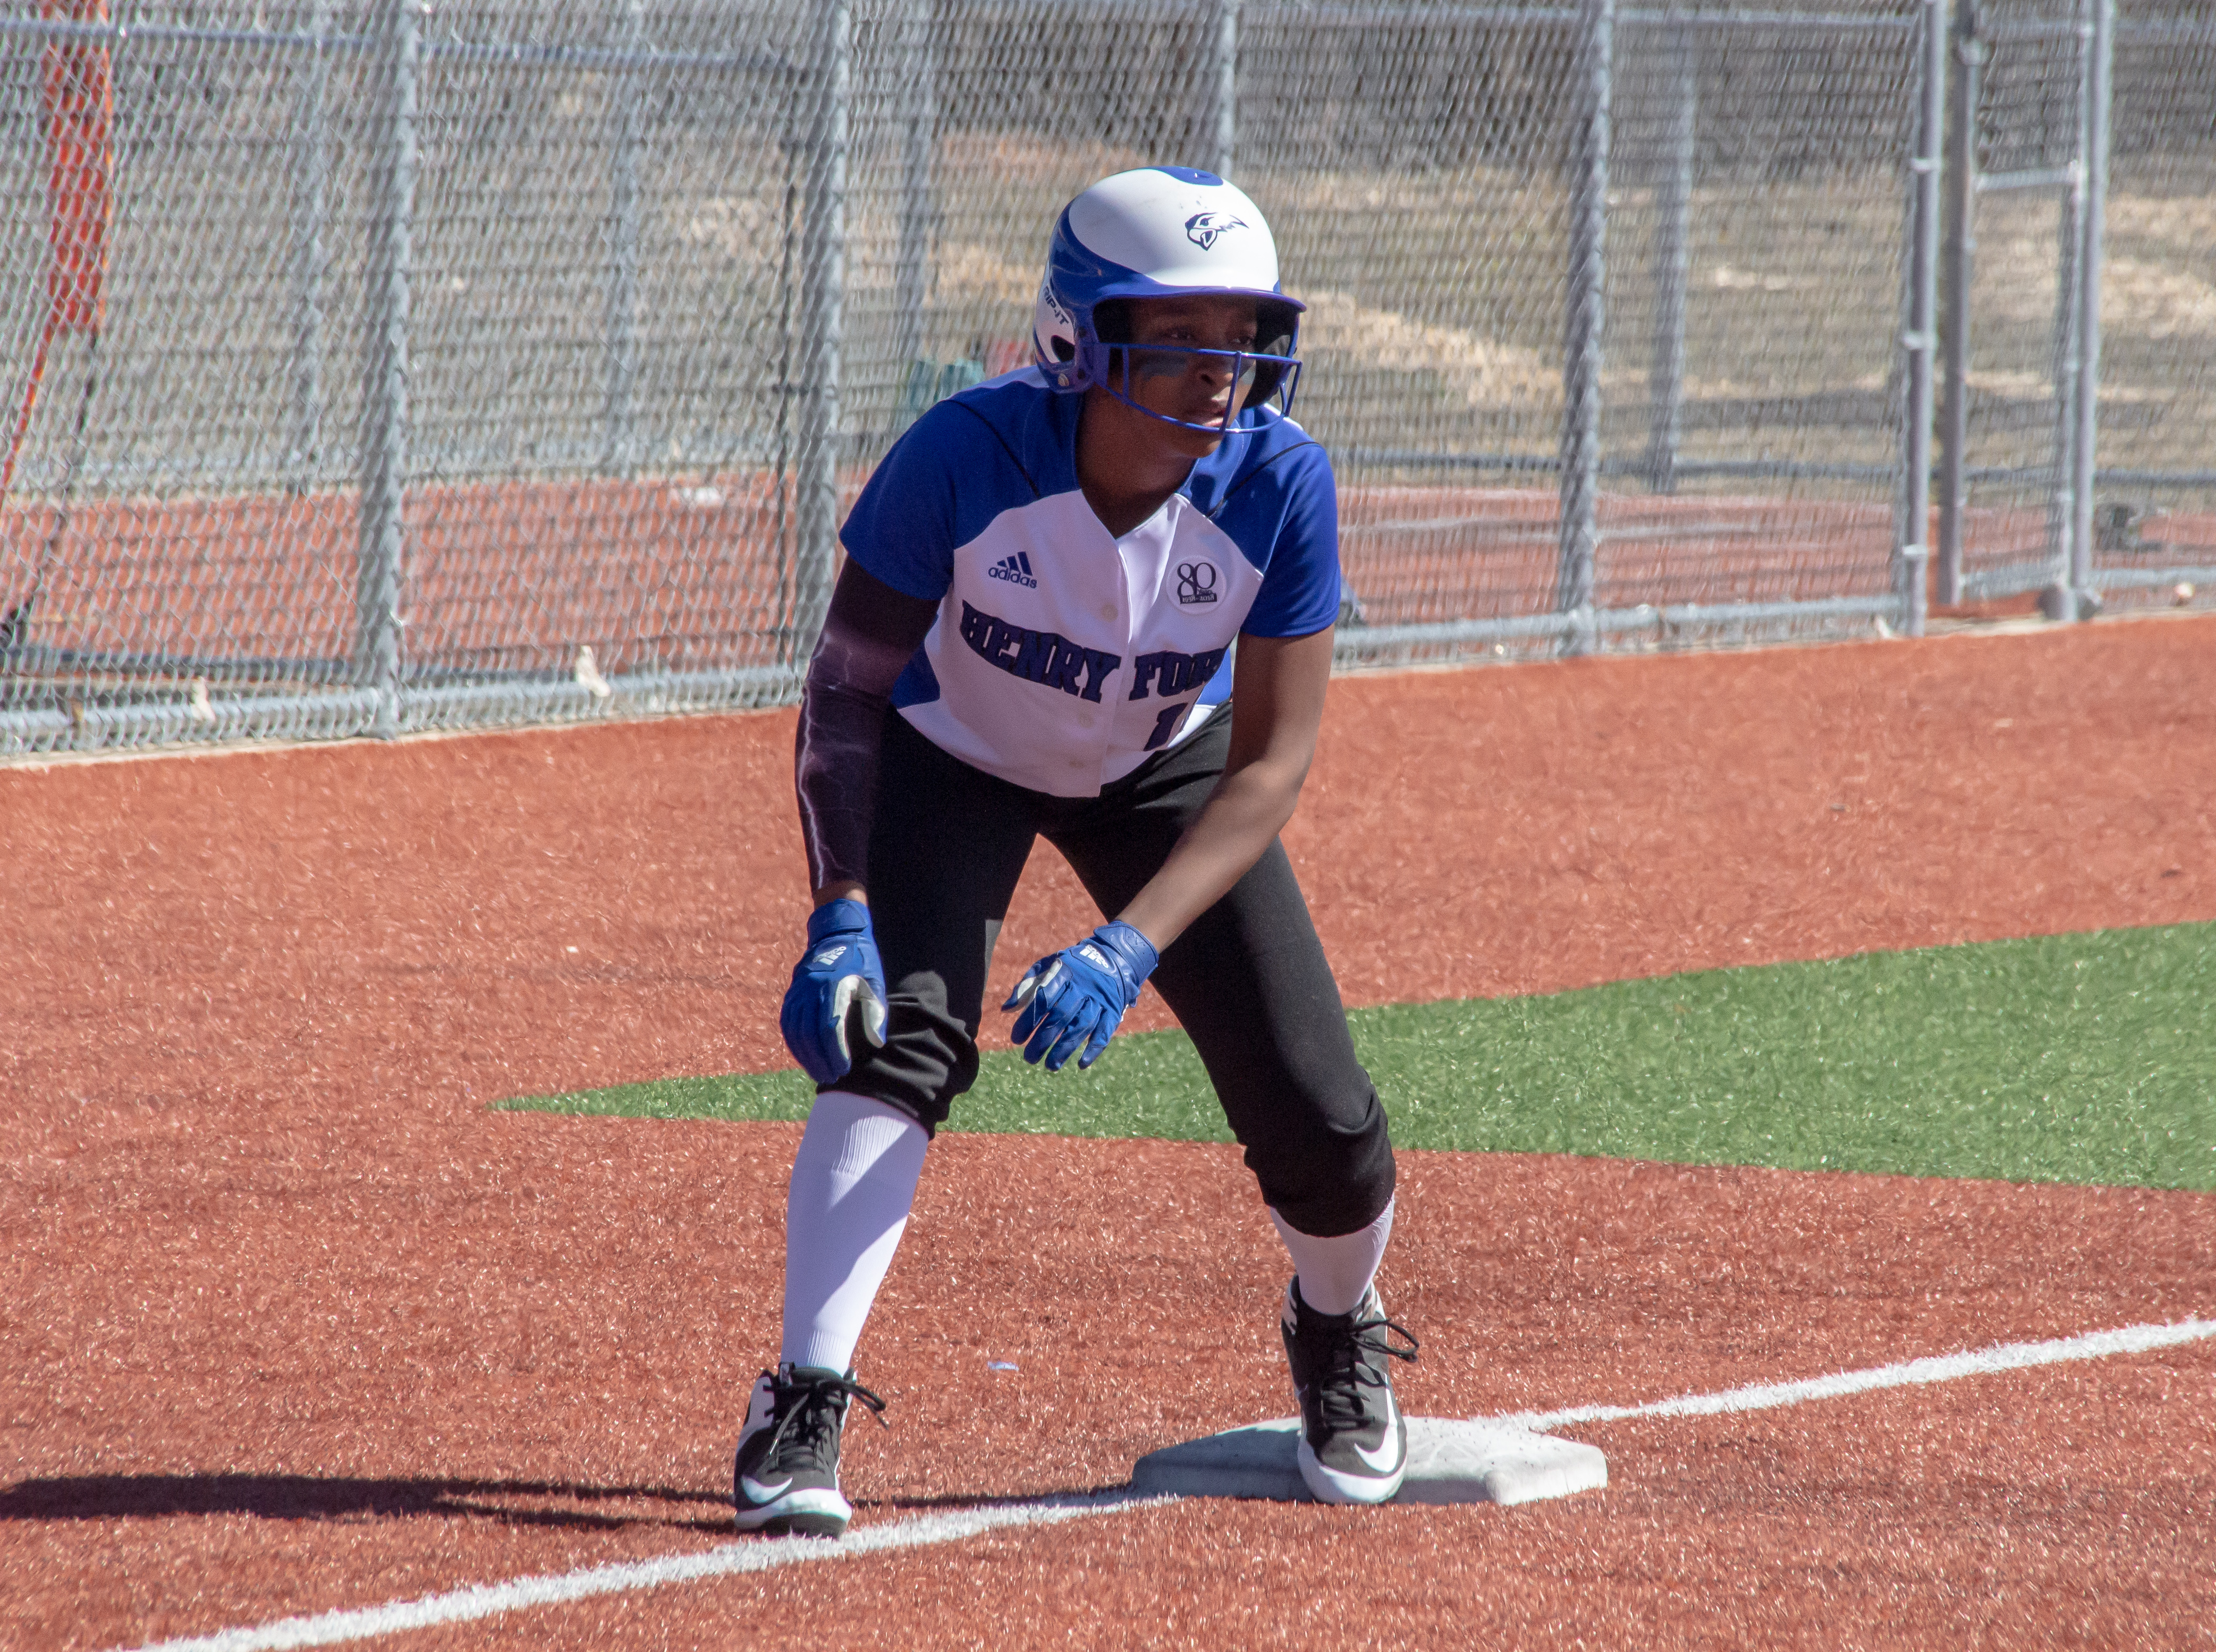 Photo of HFC softball player Moya Jones